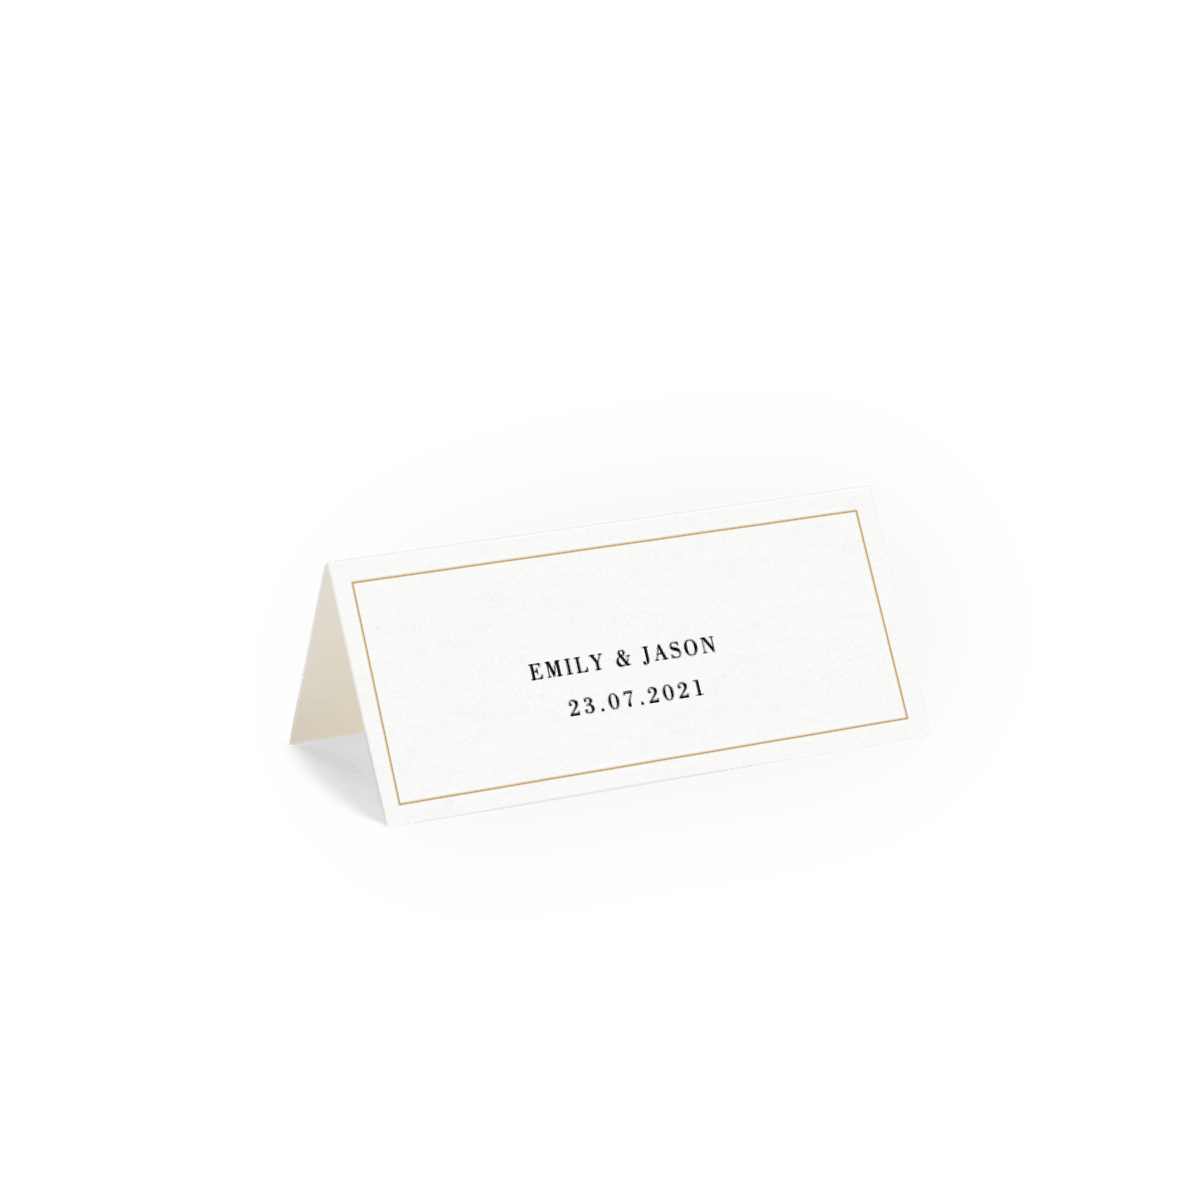 Https%3a%2f%2fwww.papier.com%2fproduct image%2f81744%2f15%2fclassic thin border gold 19673 arriere 1561991937.png?ixlib=rb 1.1